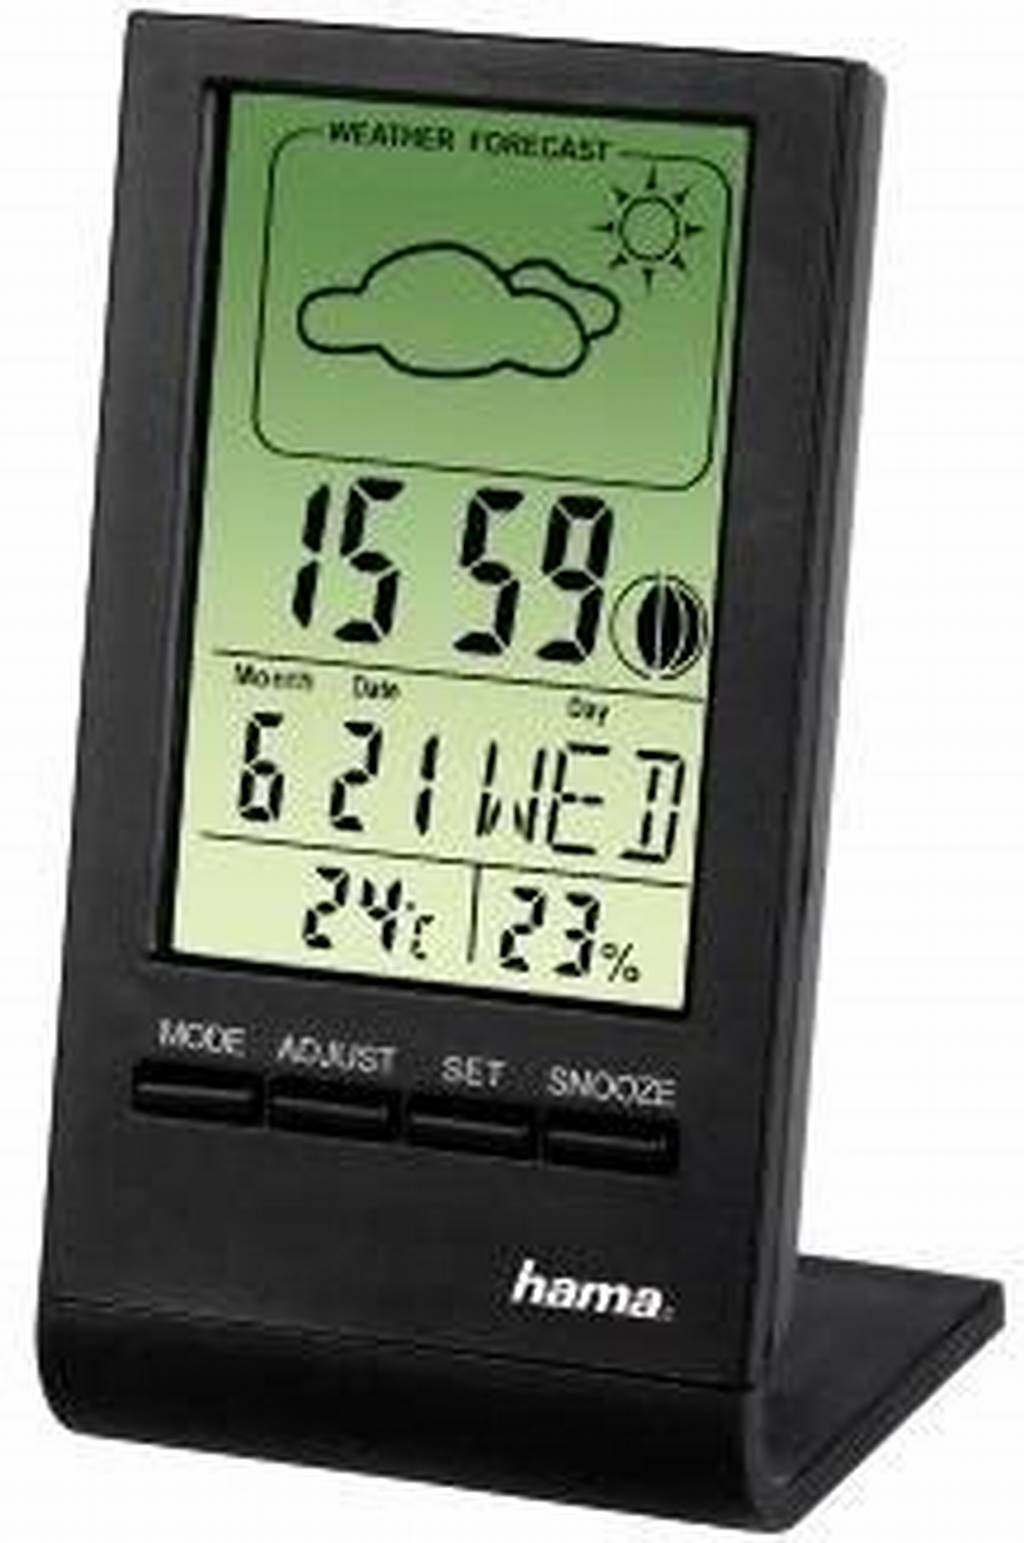 #Hama #75297 #Th100 #Lcd #Thermometer #Hygrometer